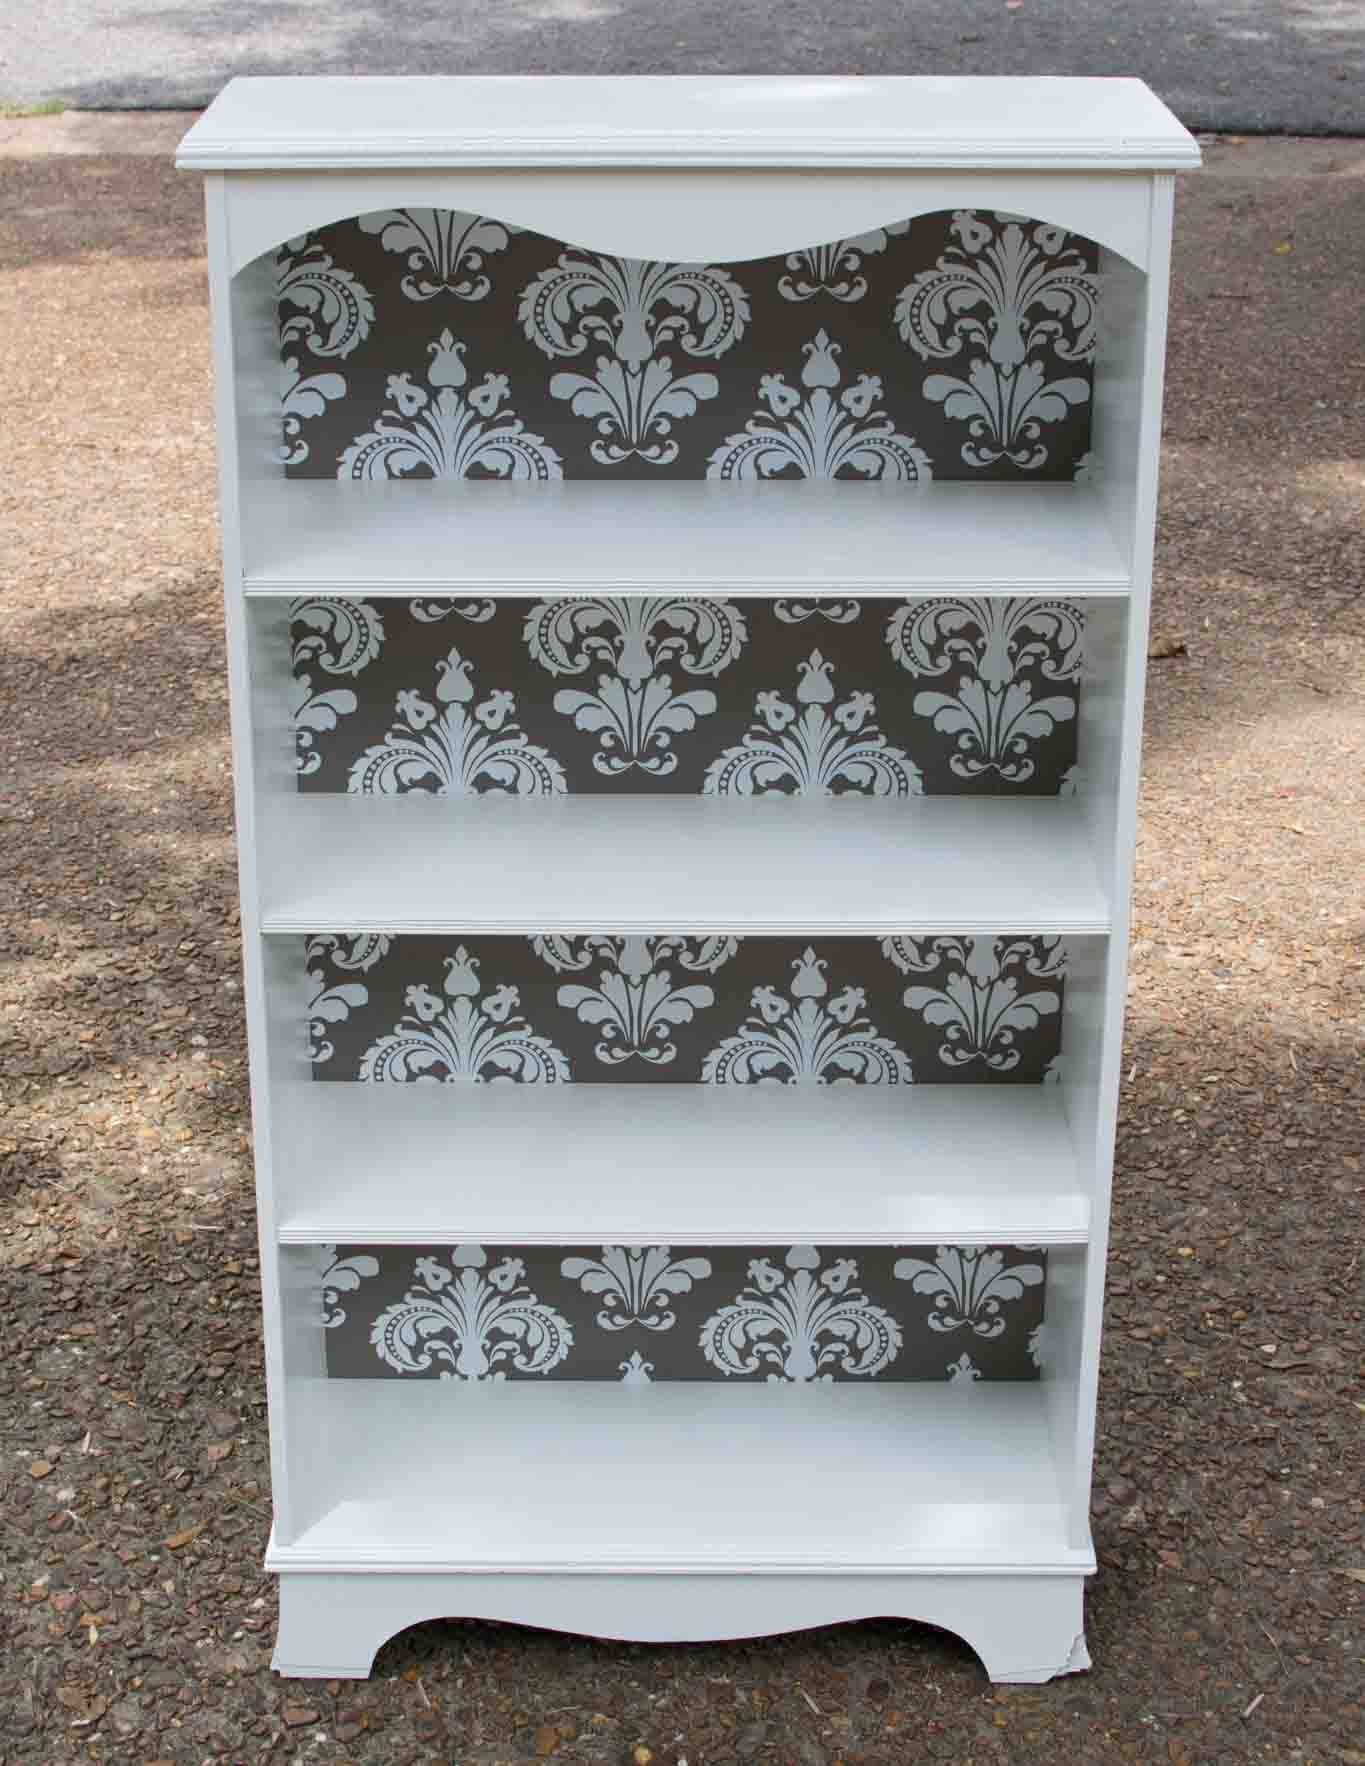 The step-by-step to repurposing an ugly bookcase